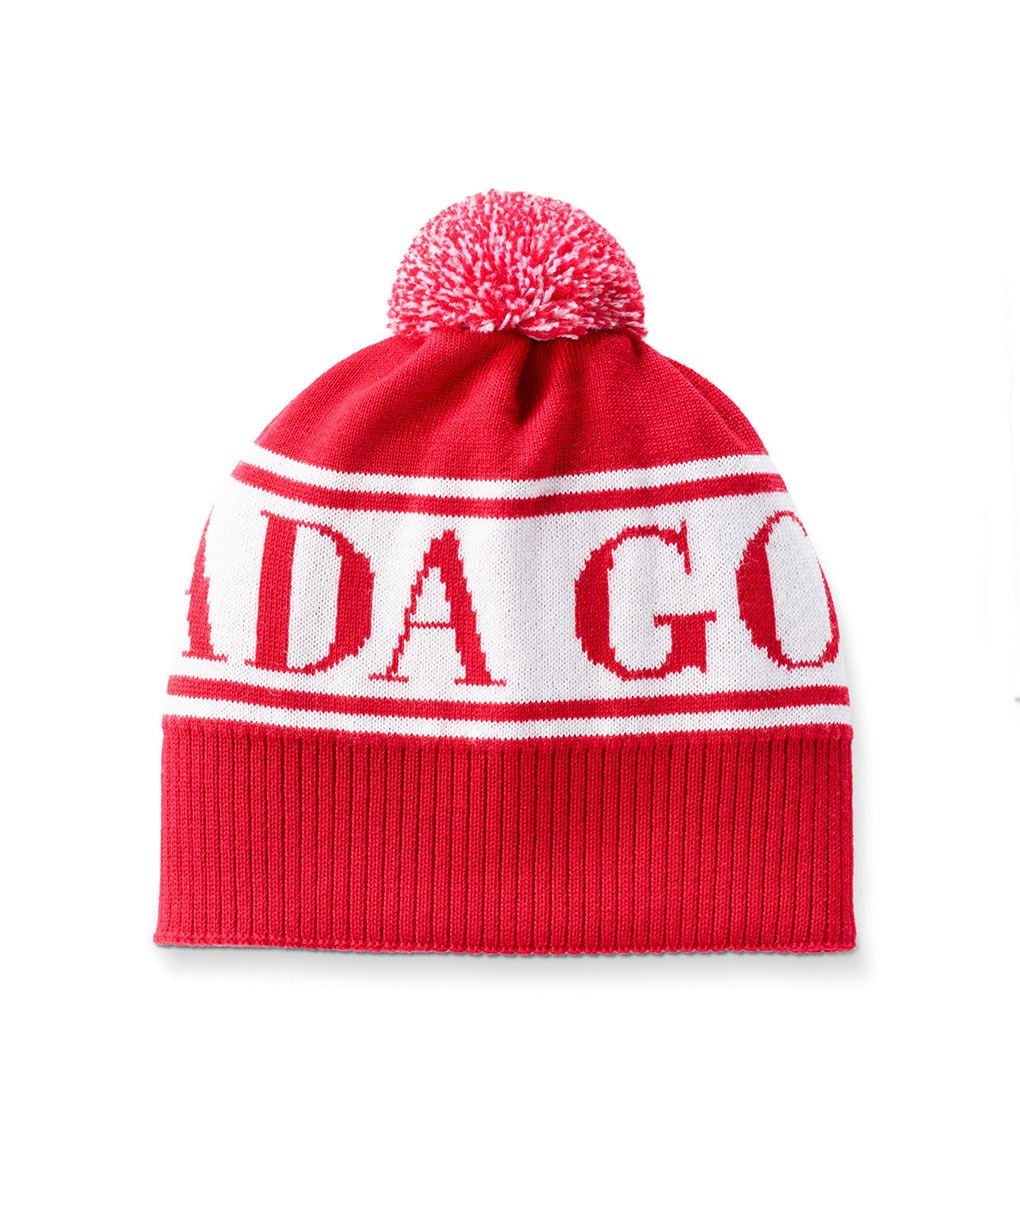 KIDS MERINO LOGO TOQUE